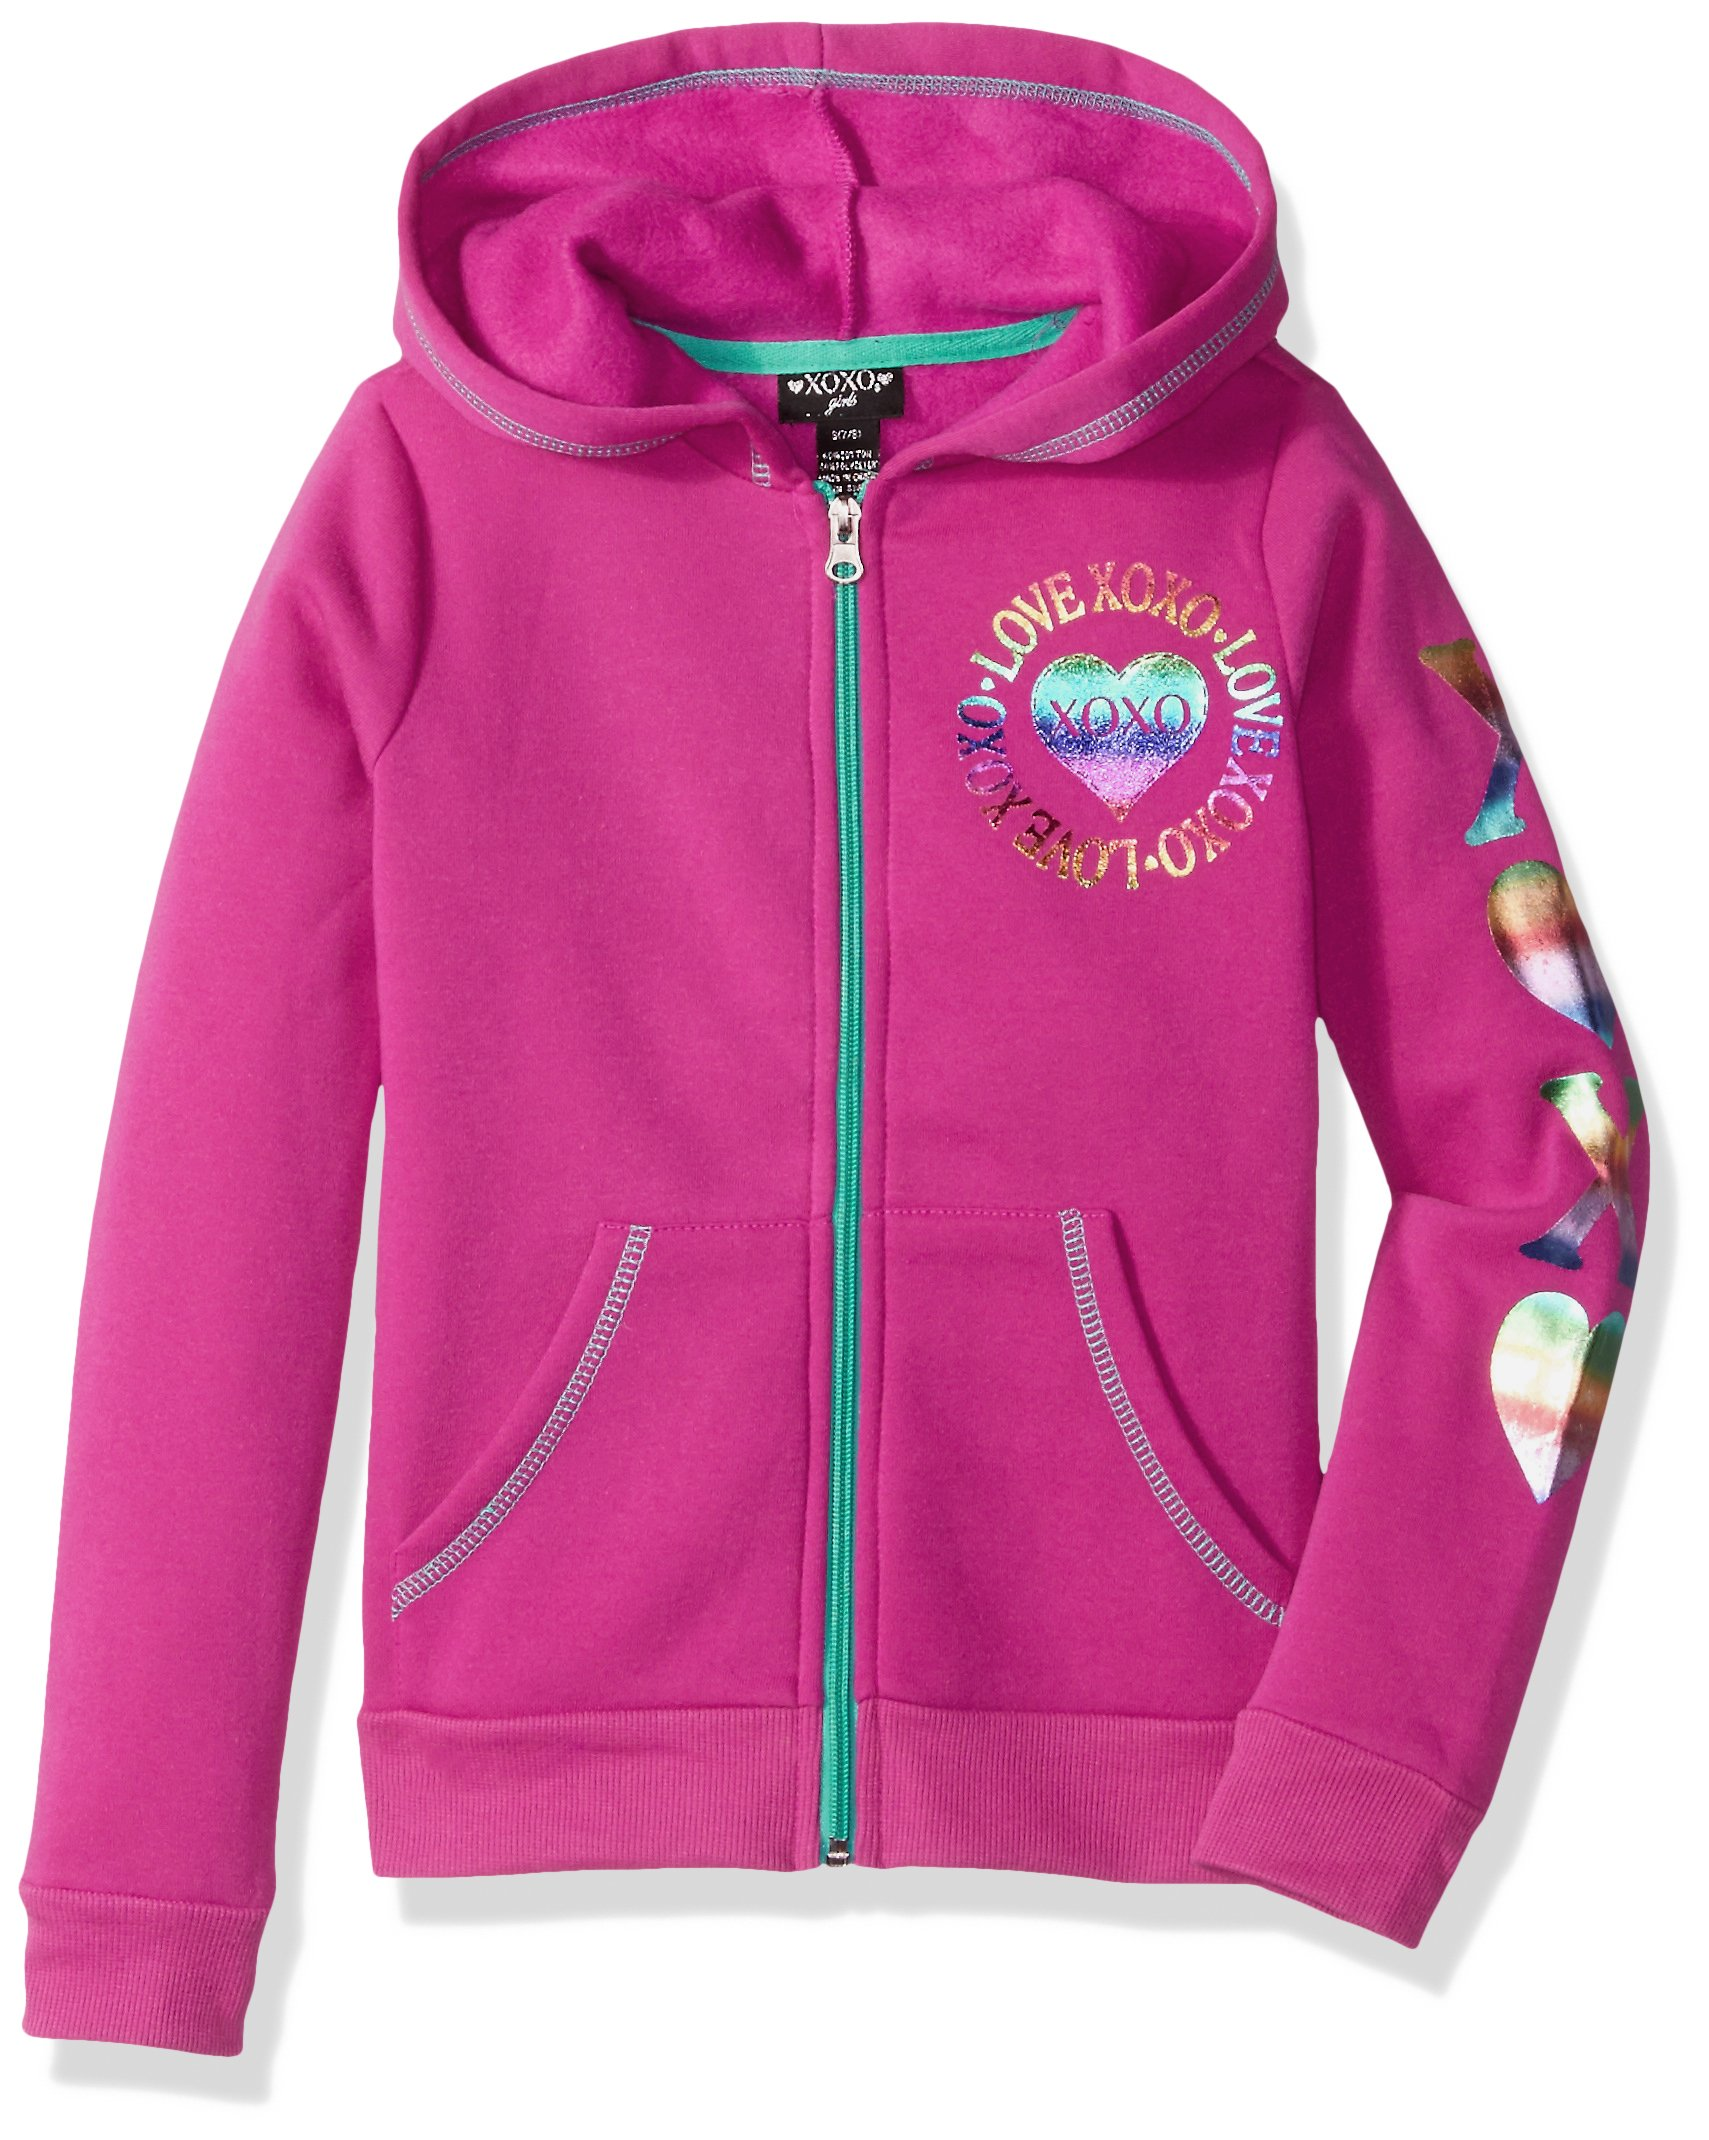 XOXO Big Girls' Fleece Logo Hoodie, Tibet Berry Heart, 10/12